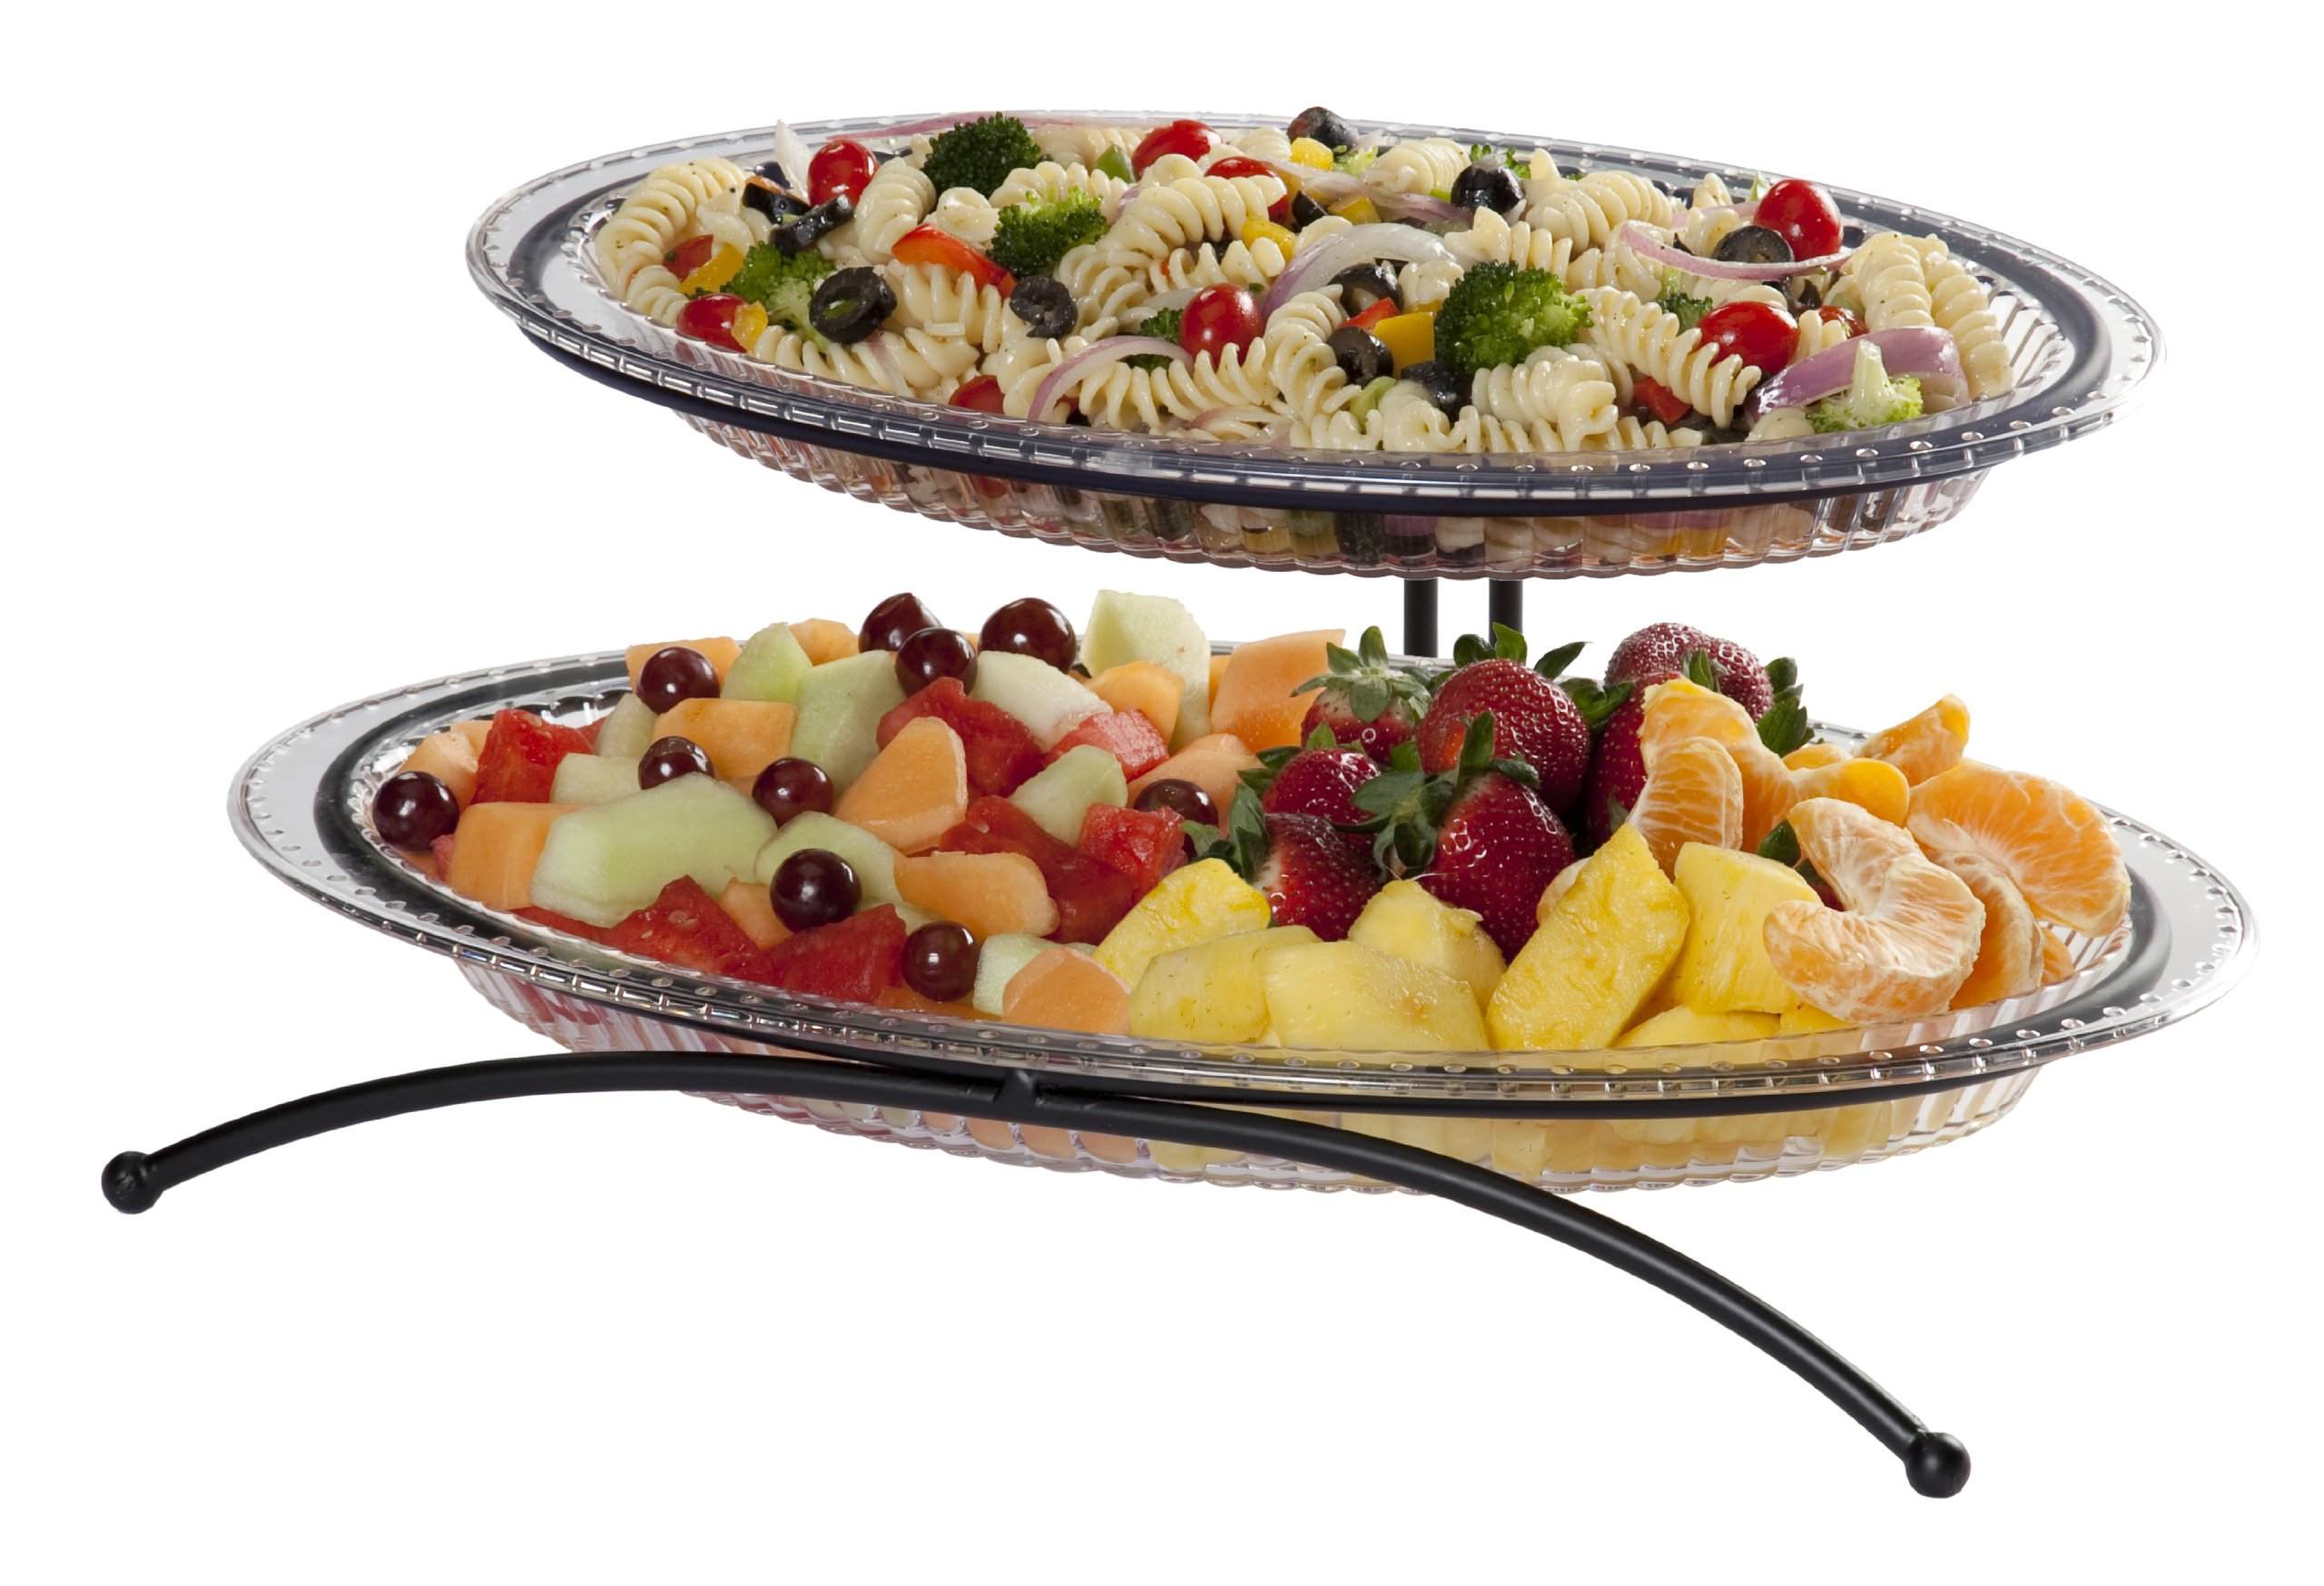 CreativeWare 2-Tier Buffet Server, Includes 1 Small and 1 Larger Platter